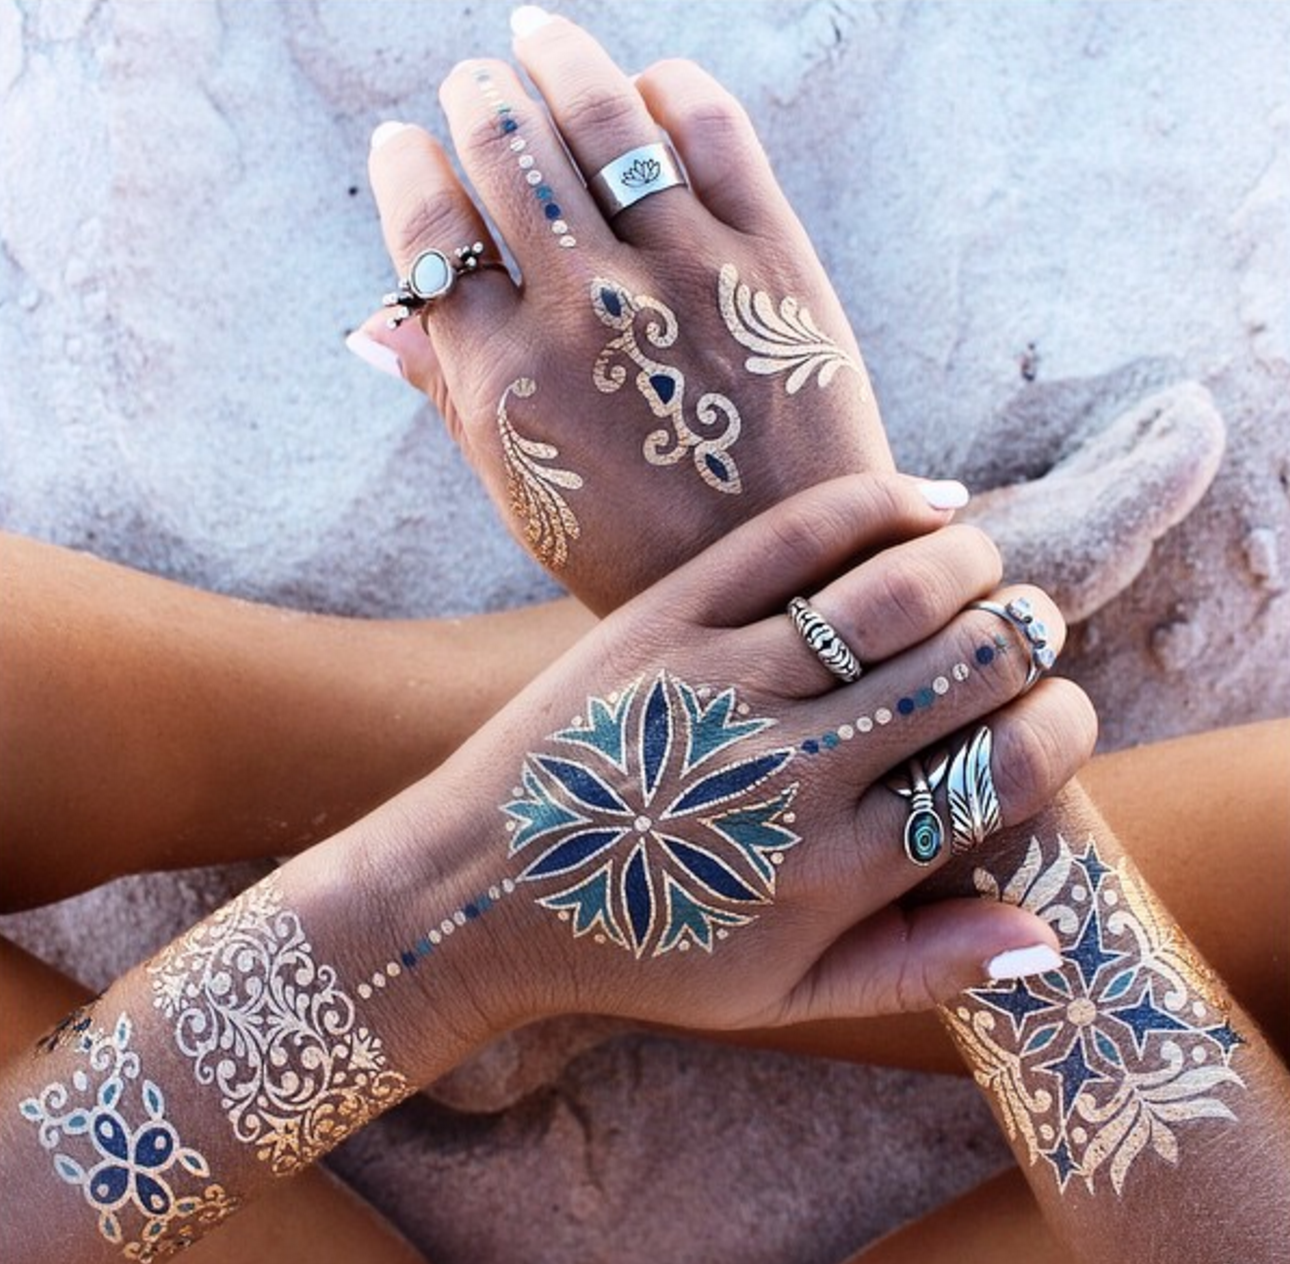 Do glitter/metallic tattoos exist? - Quora